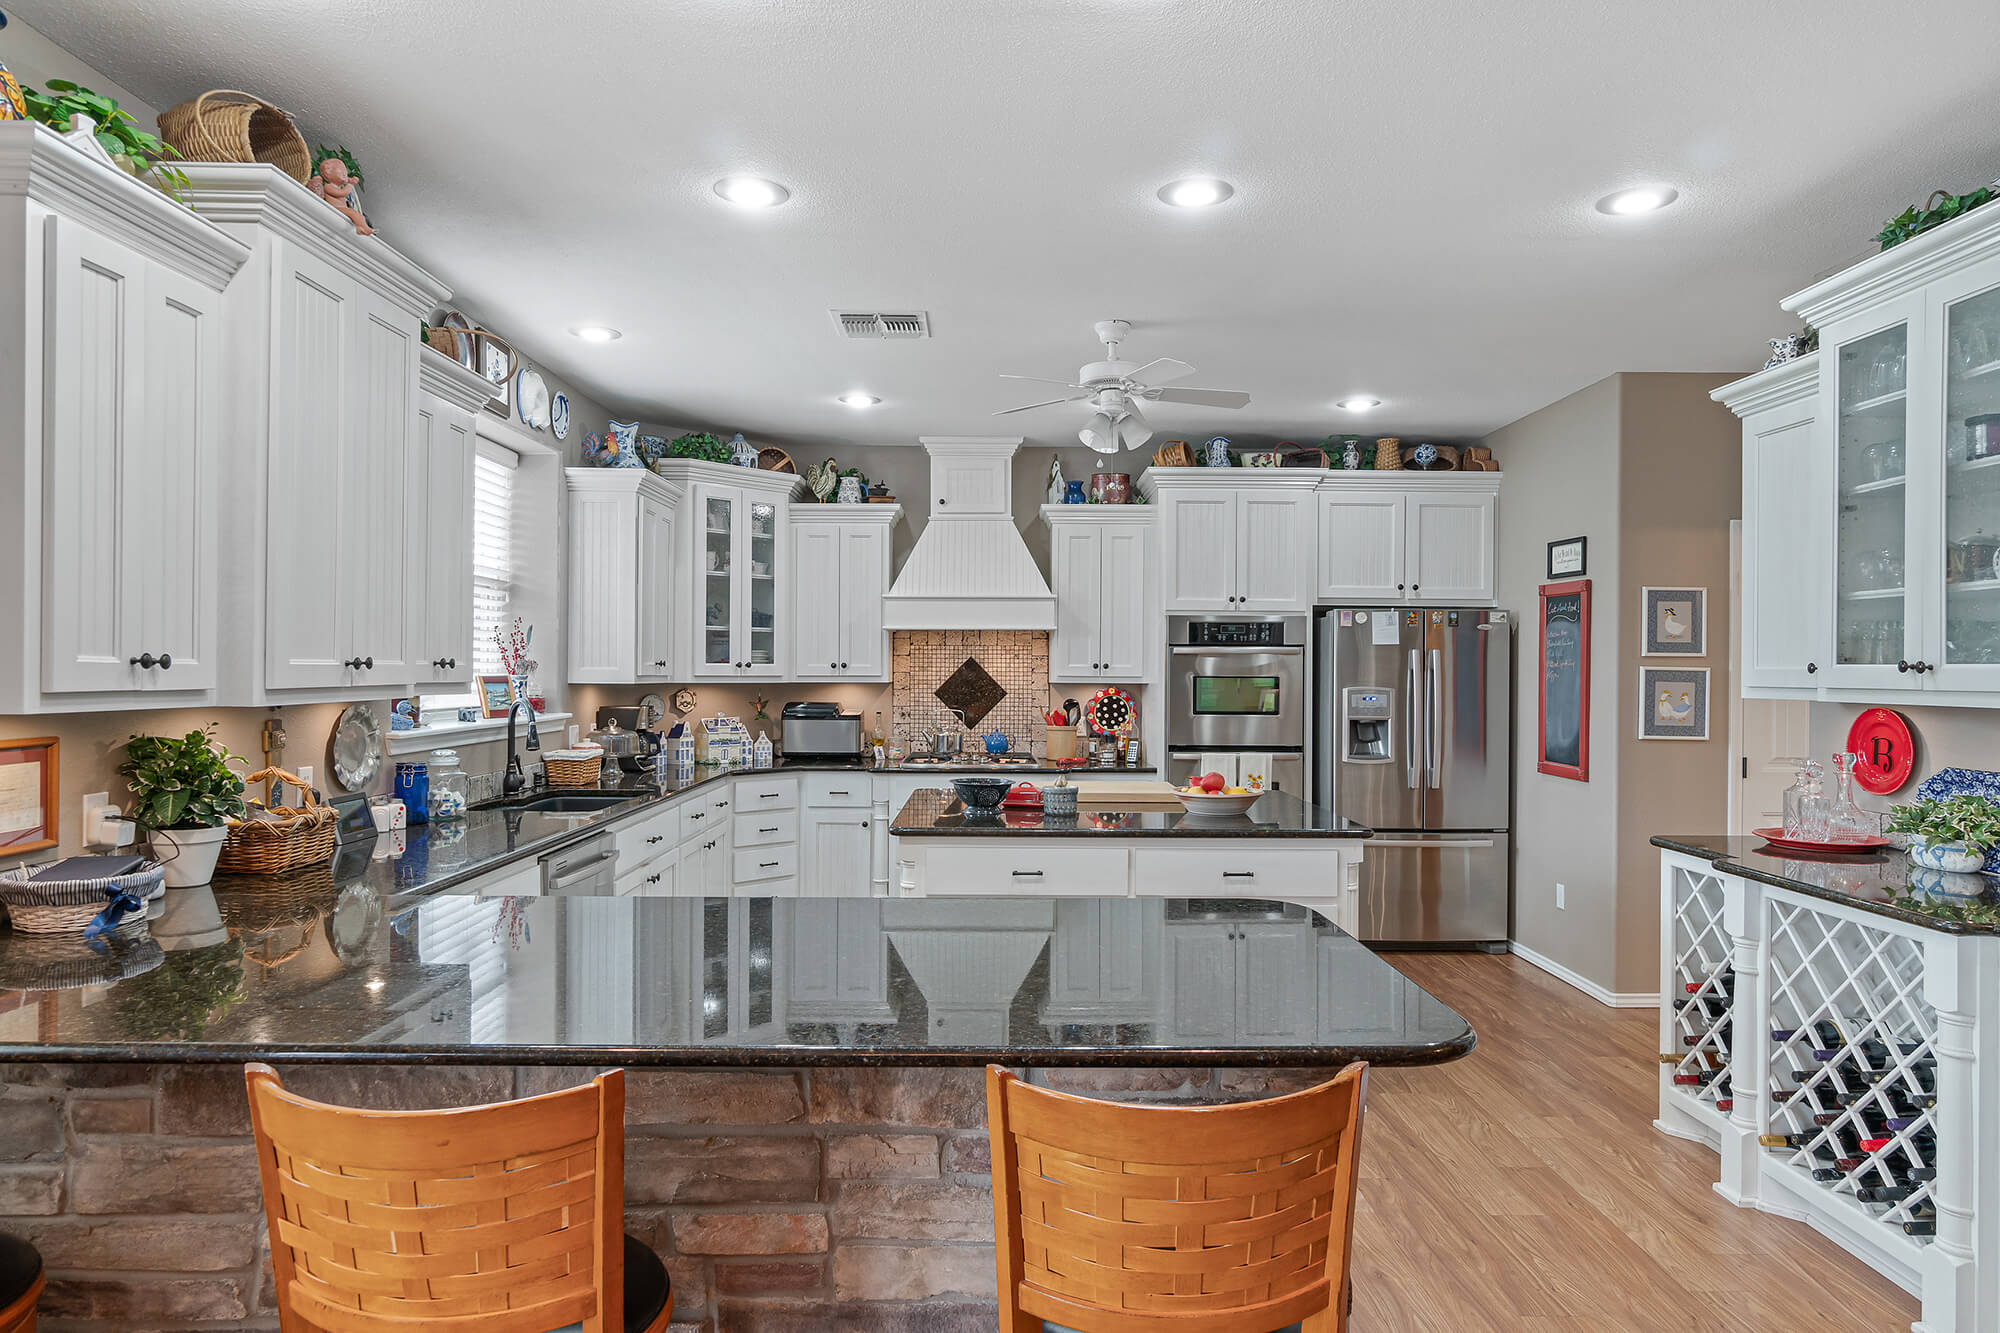 Tailwind hangar home kitchen and dining